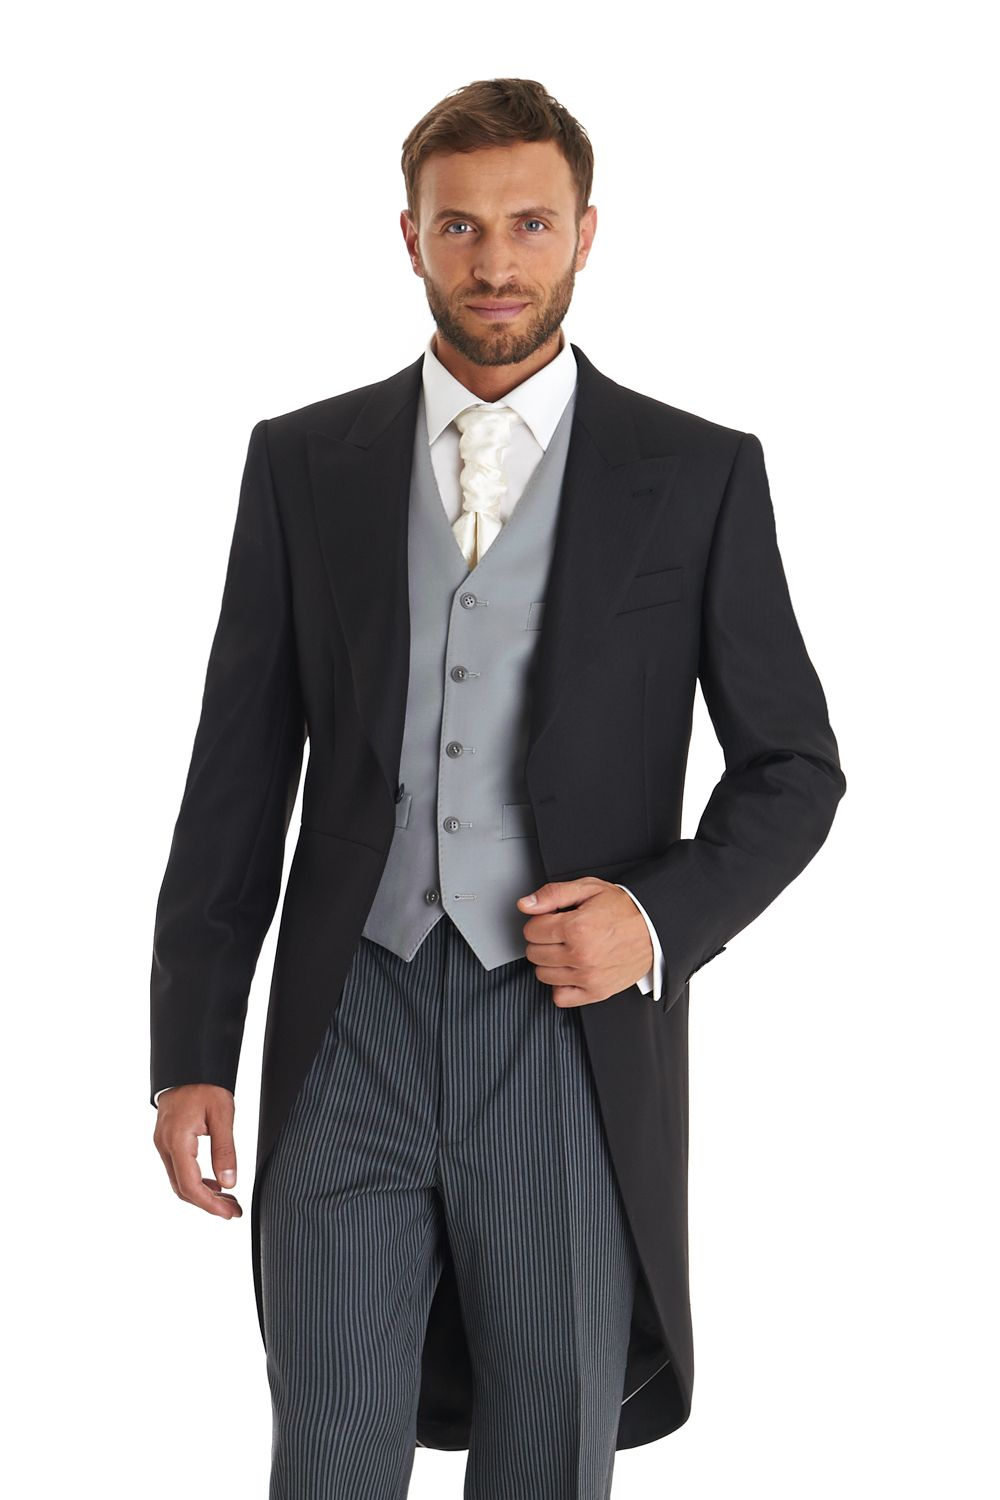 This Men S Moss Bros Black Fine Herringbone Regular Fit One On Morningwear Coat With Peak Lapels Is Made From 100 Wool And Perfect For A Wedding Or